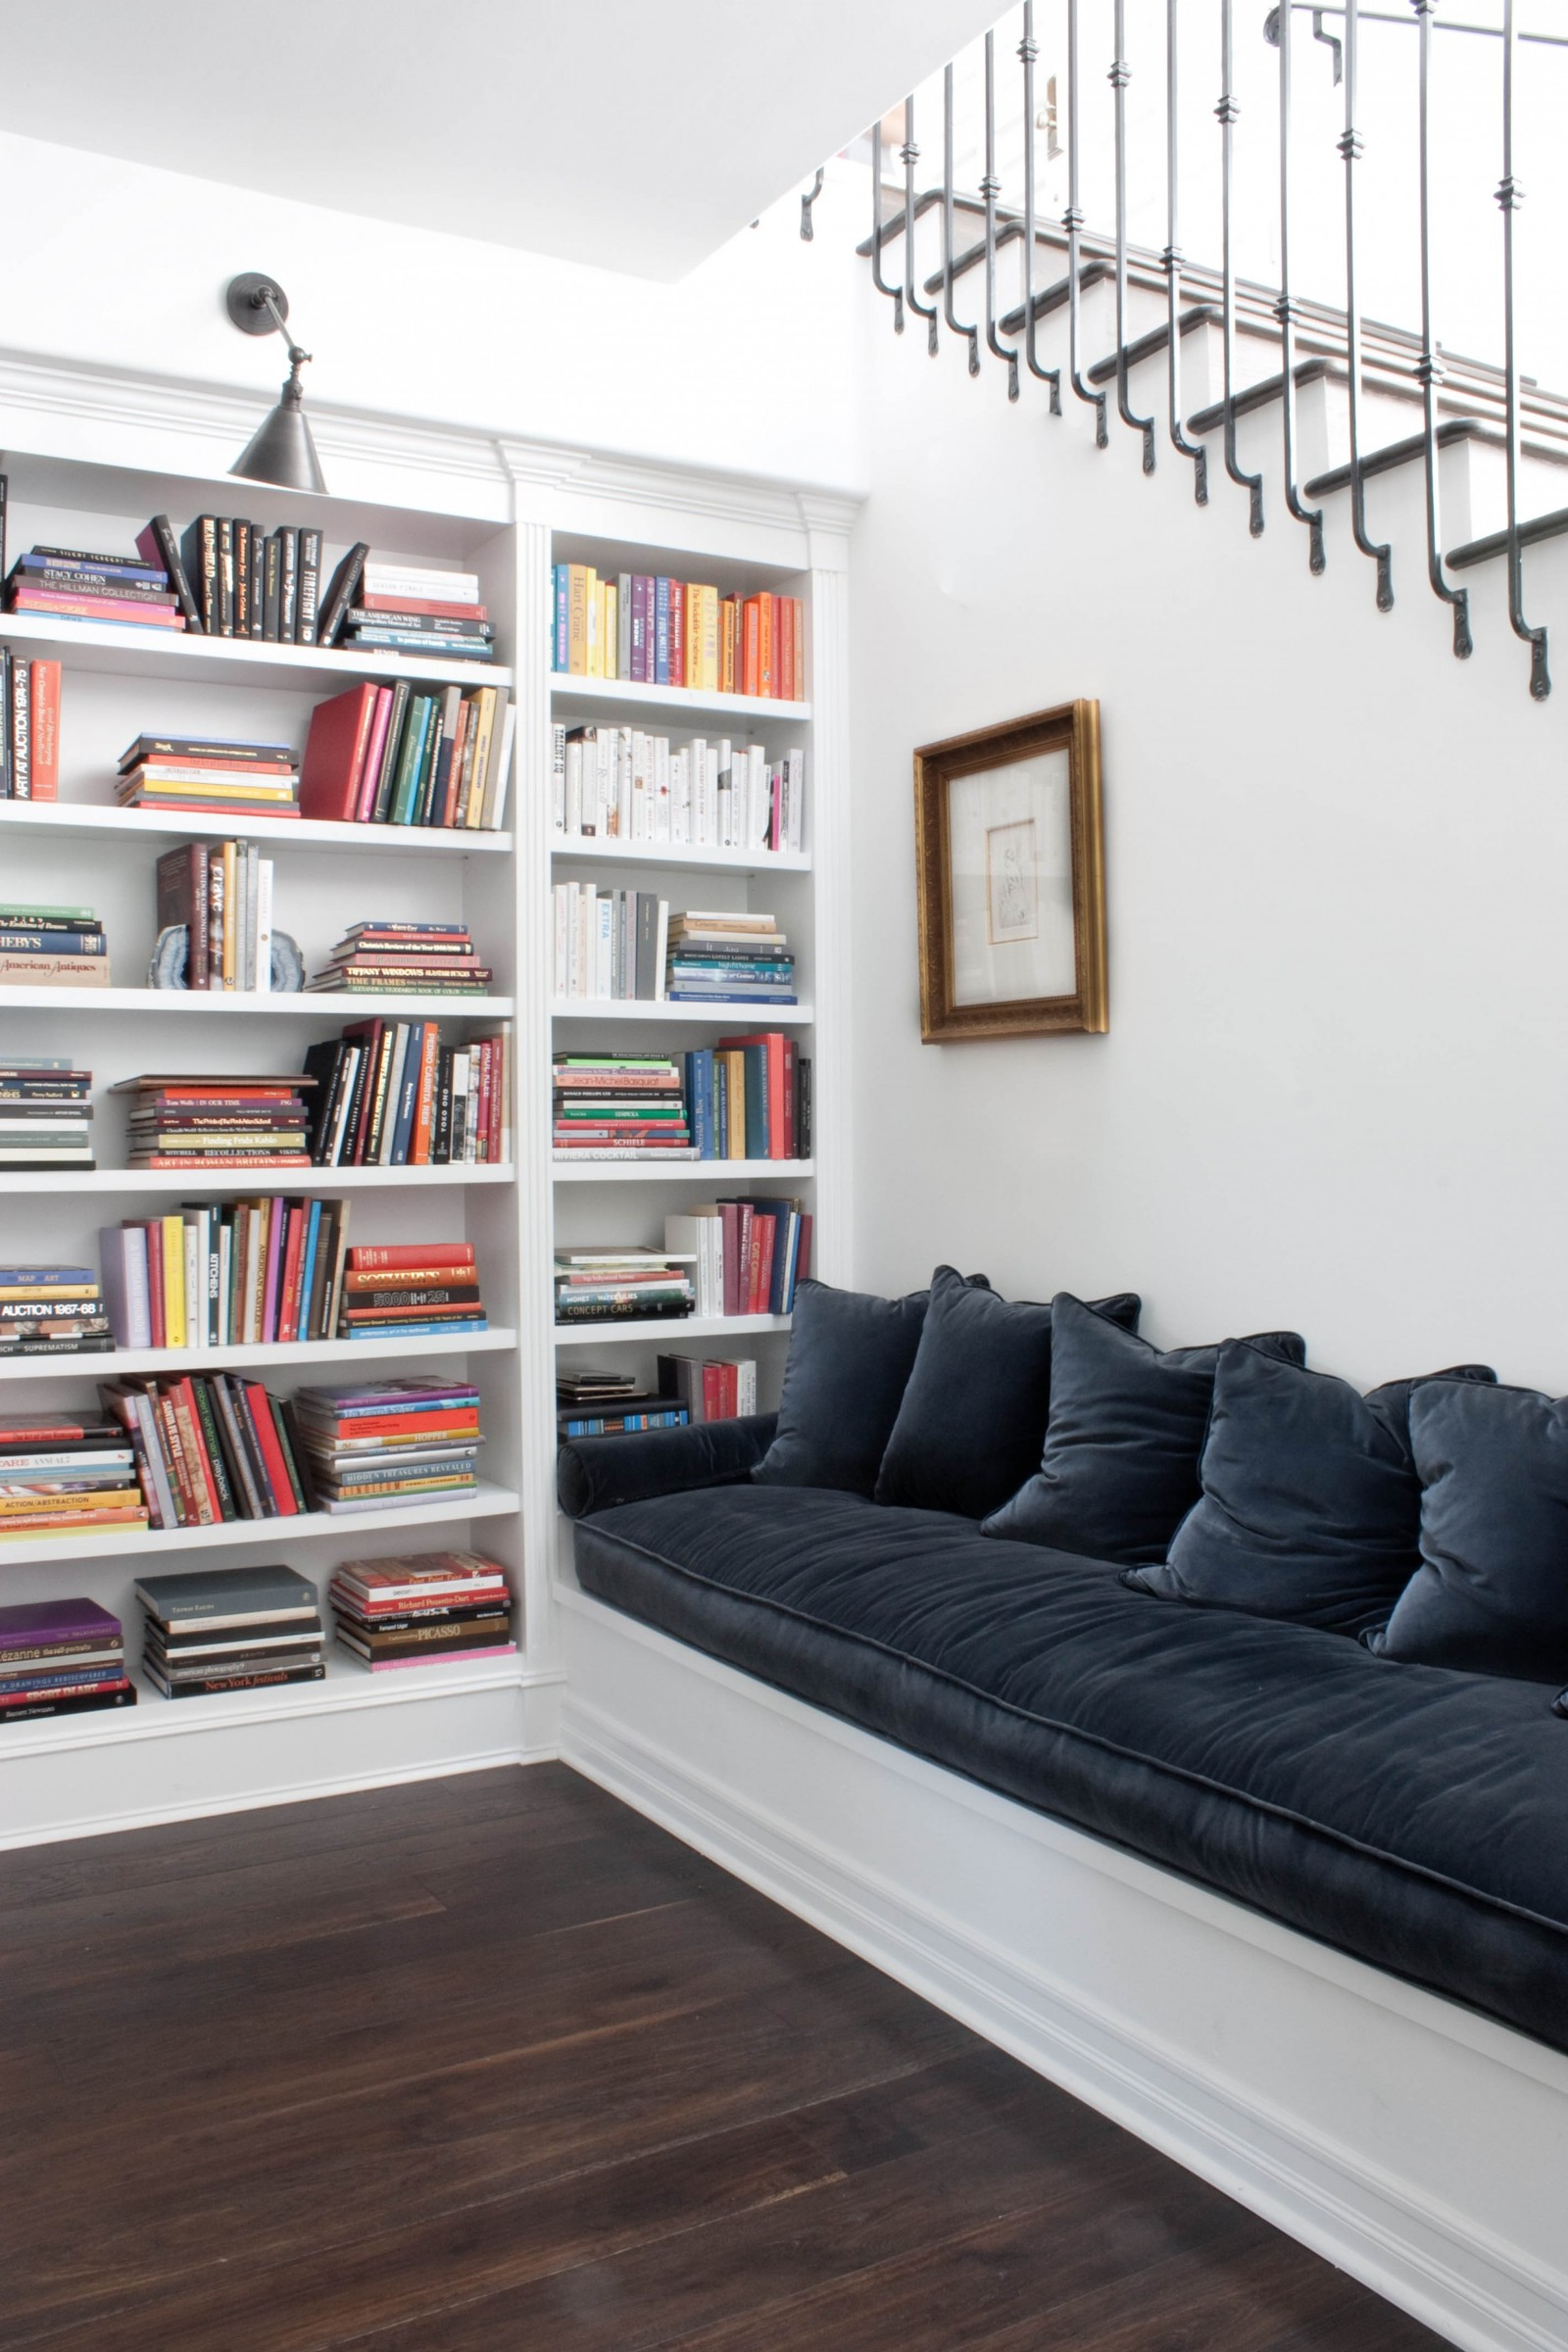 Built-in bookshelves and bench